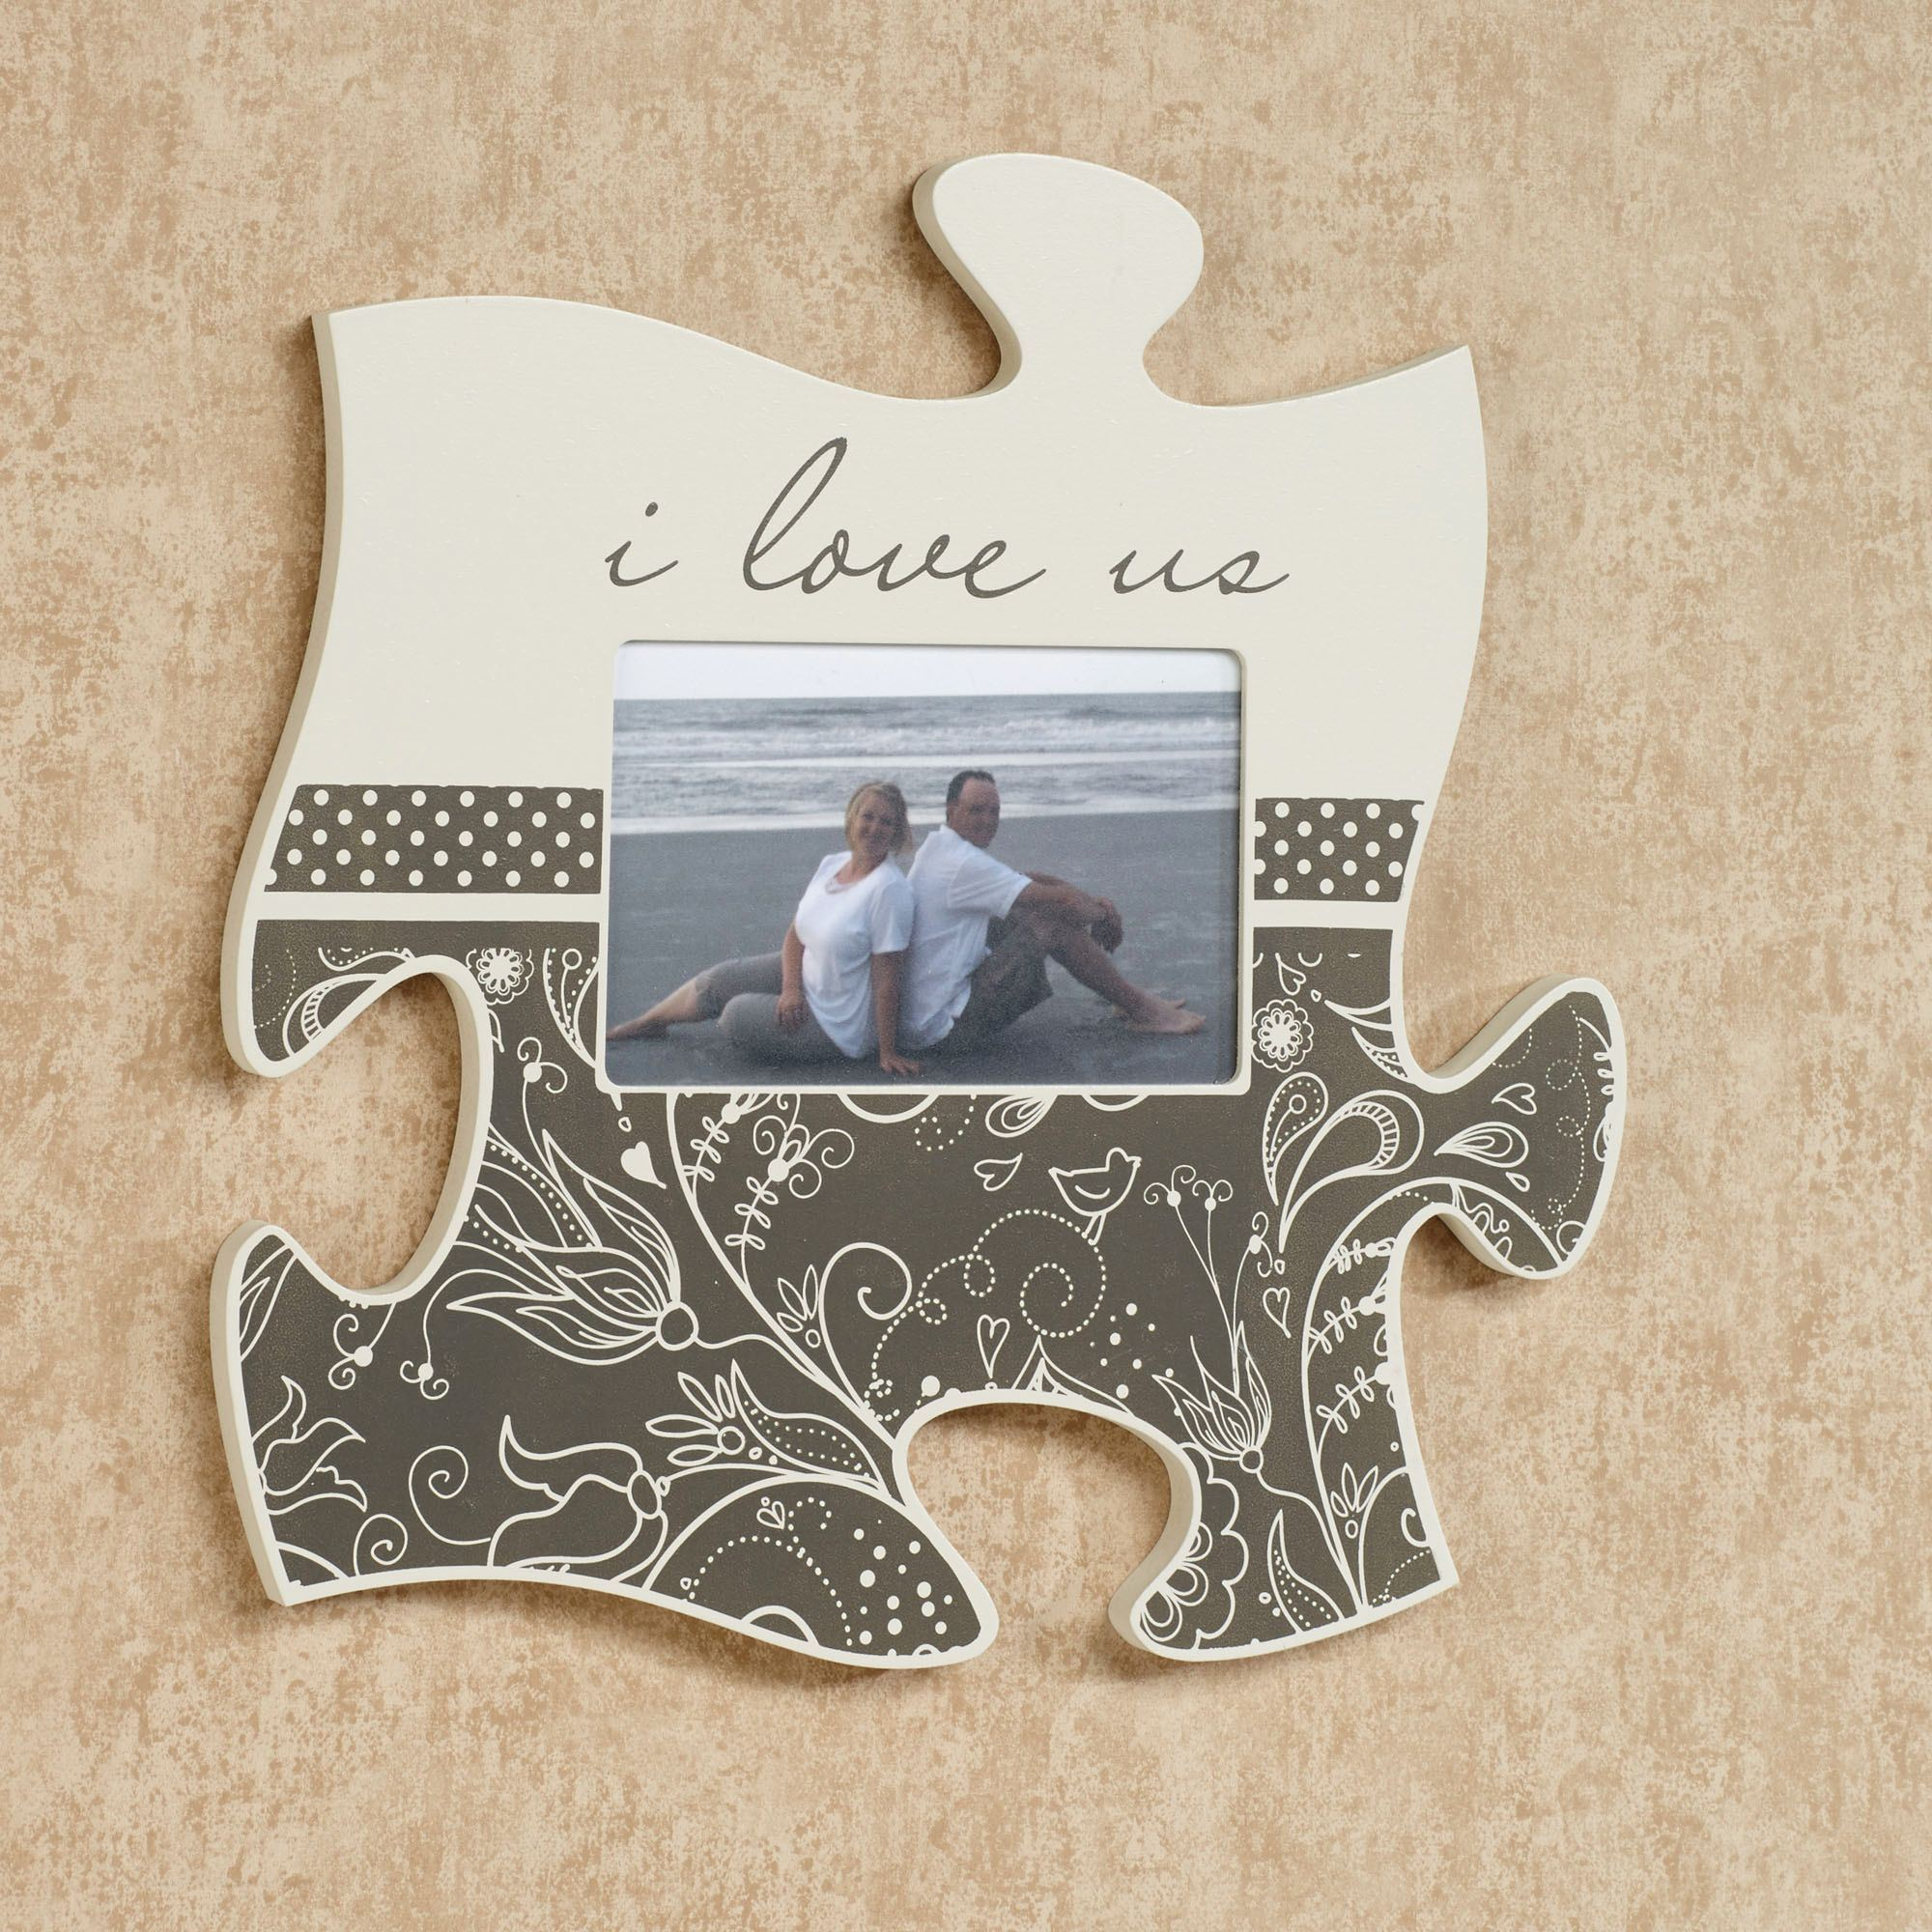 Puzzle wall art touch of class i love us photo frame puzzle piece wall art jeuxipadfo Images